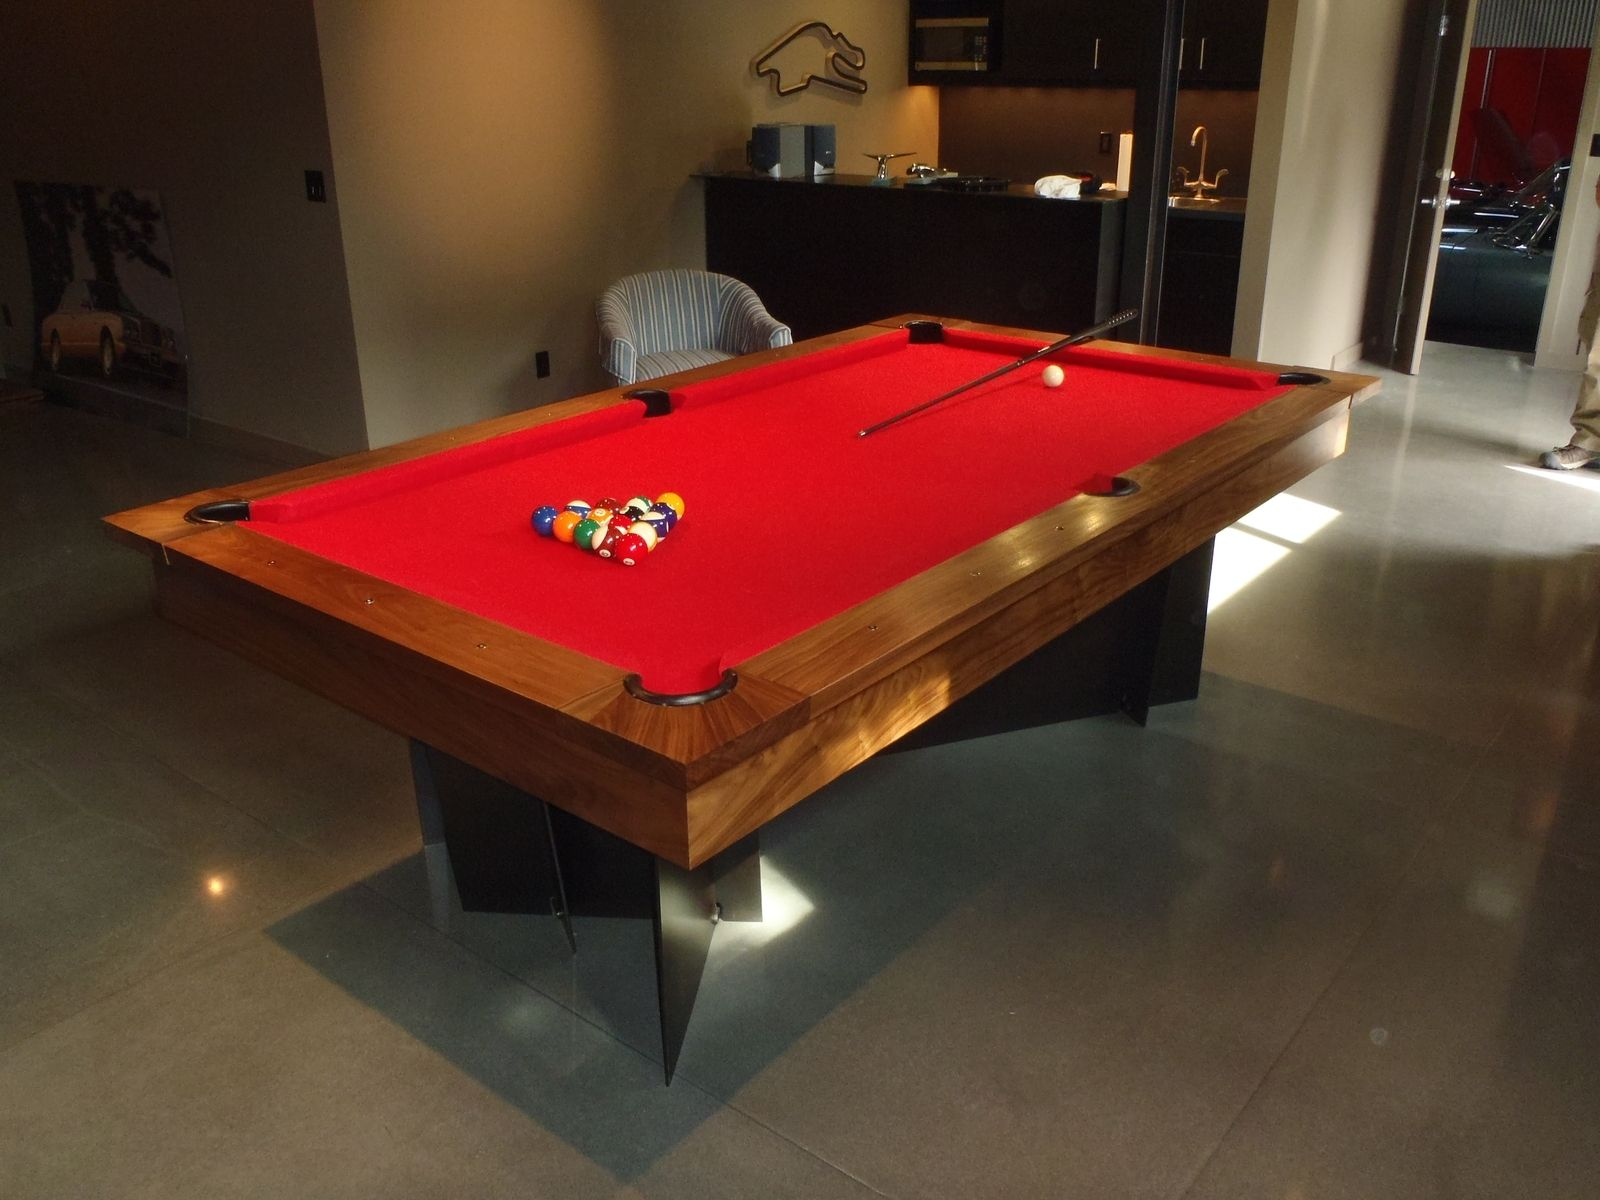 Hand Made Modern Pool Table By Dan Joseph Woodworks CustomMadecom - Modern pool table designs